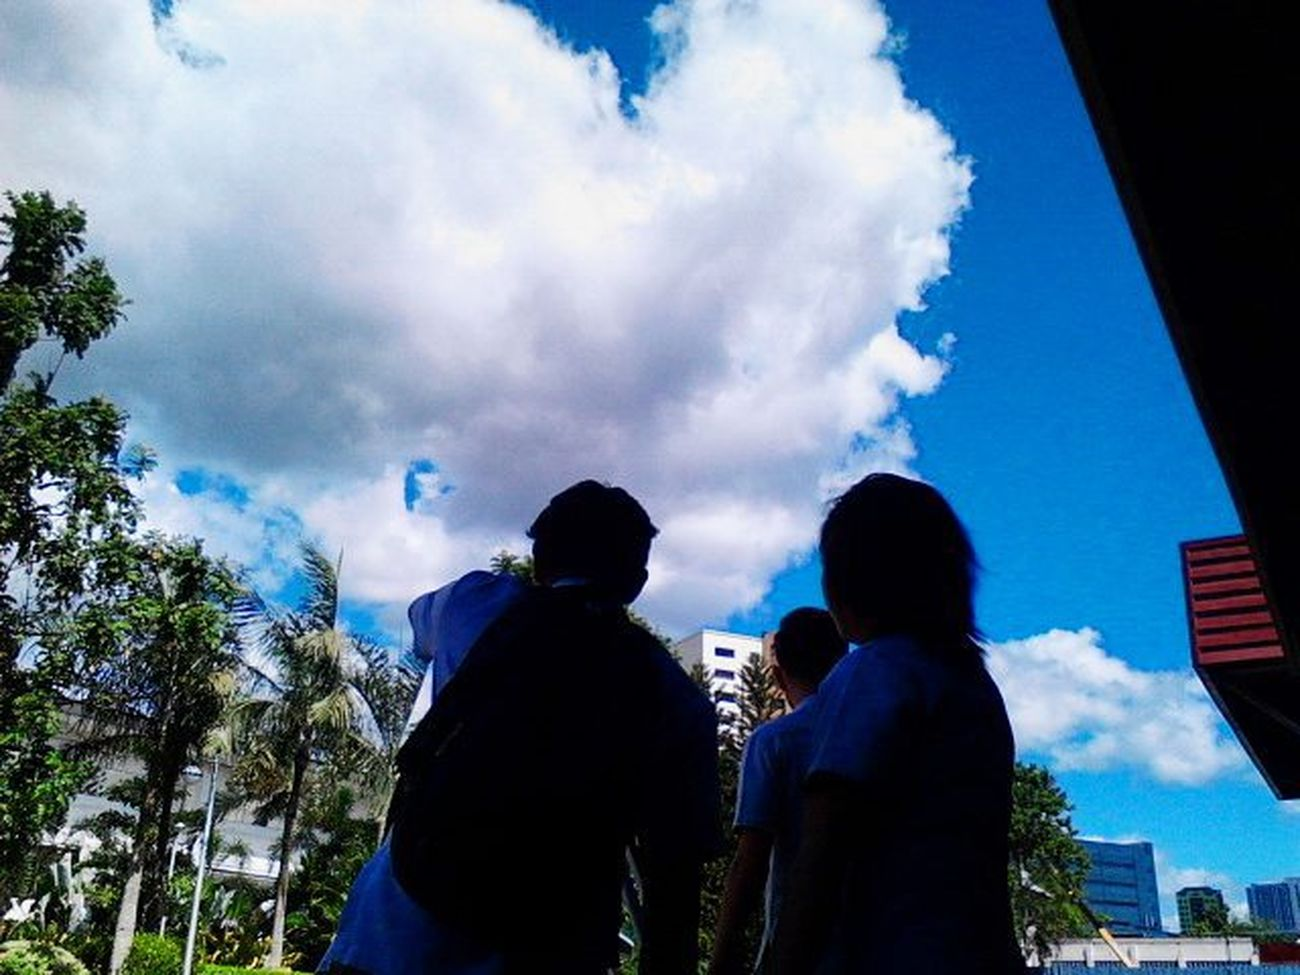 Future Civilengineers Shutterbug Clouds TIPQC Quezoncitybased Quezoncity